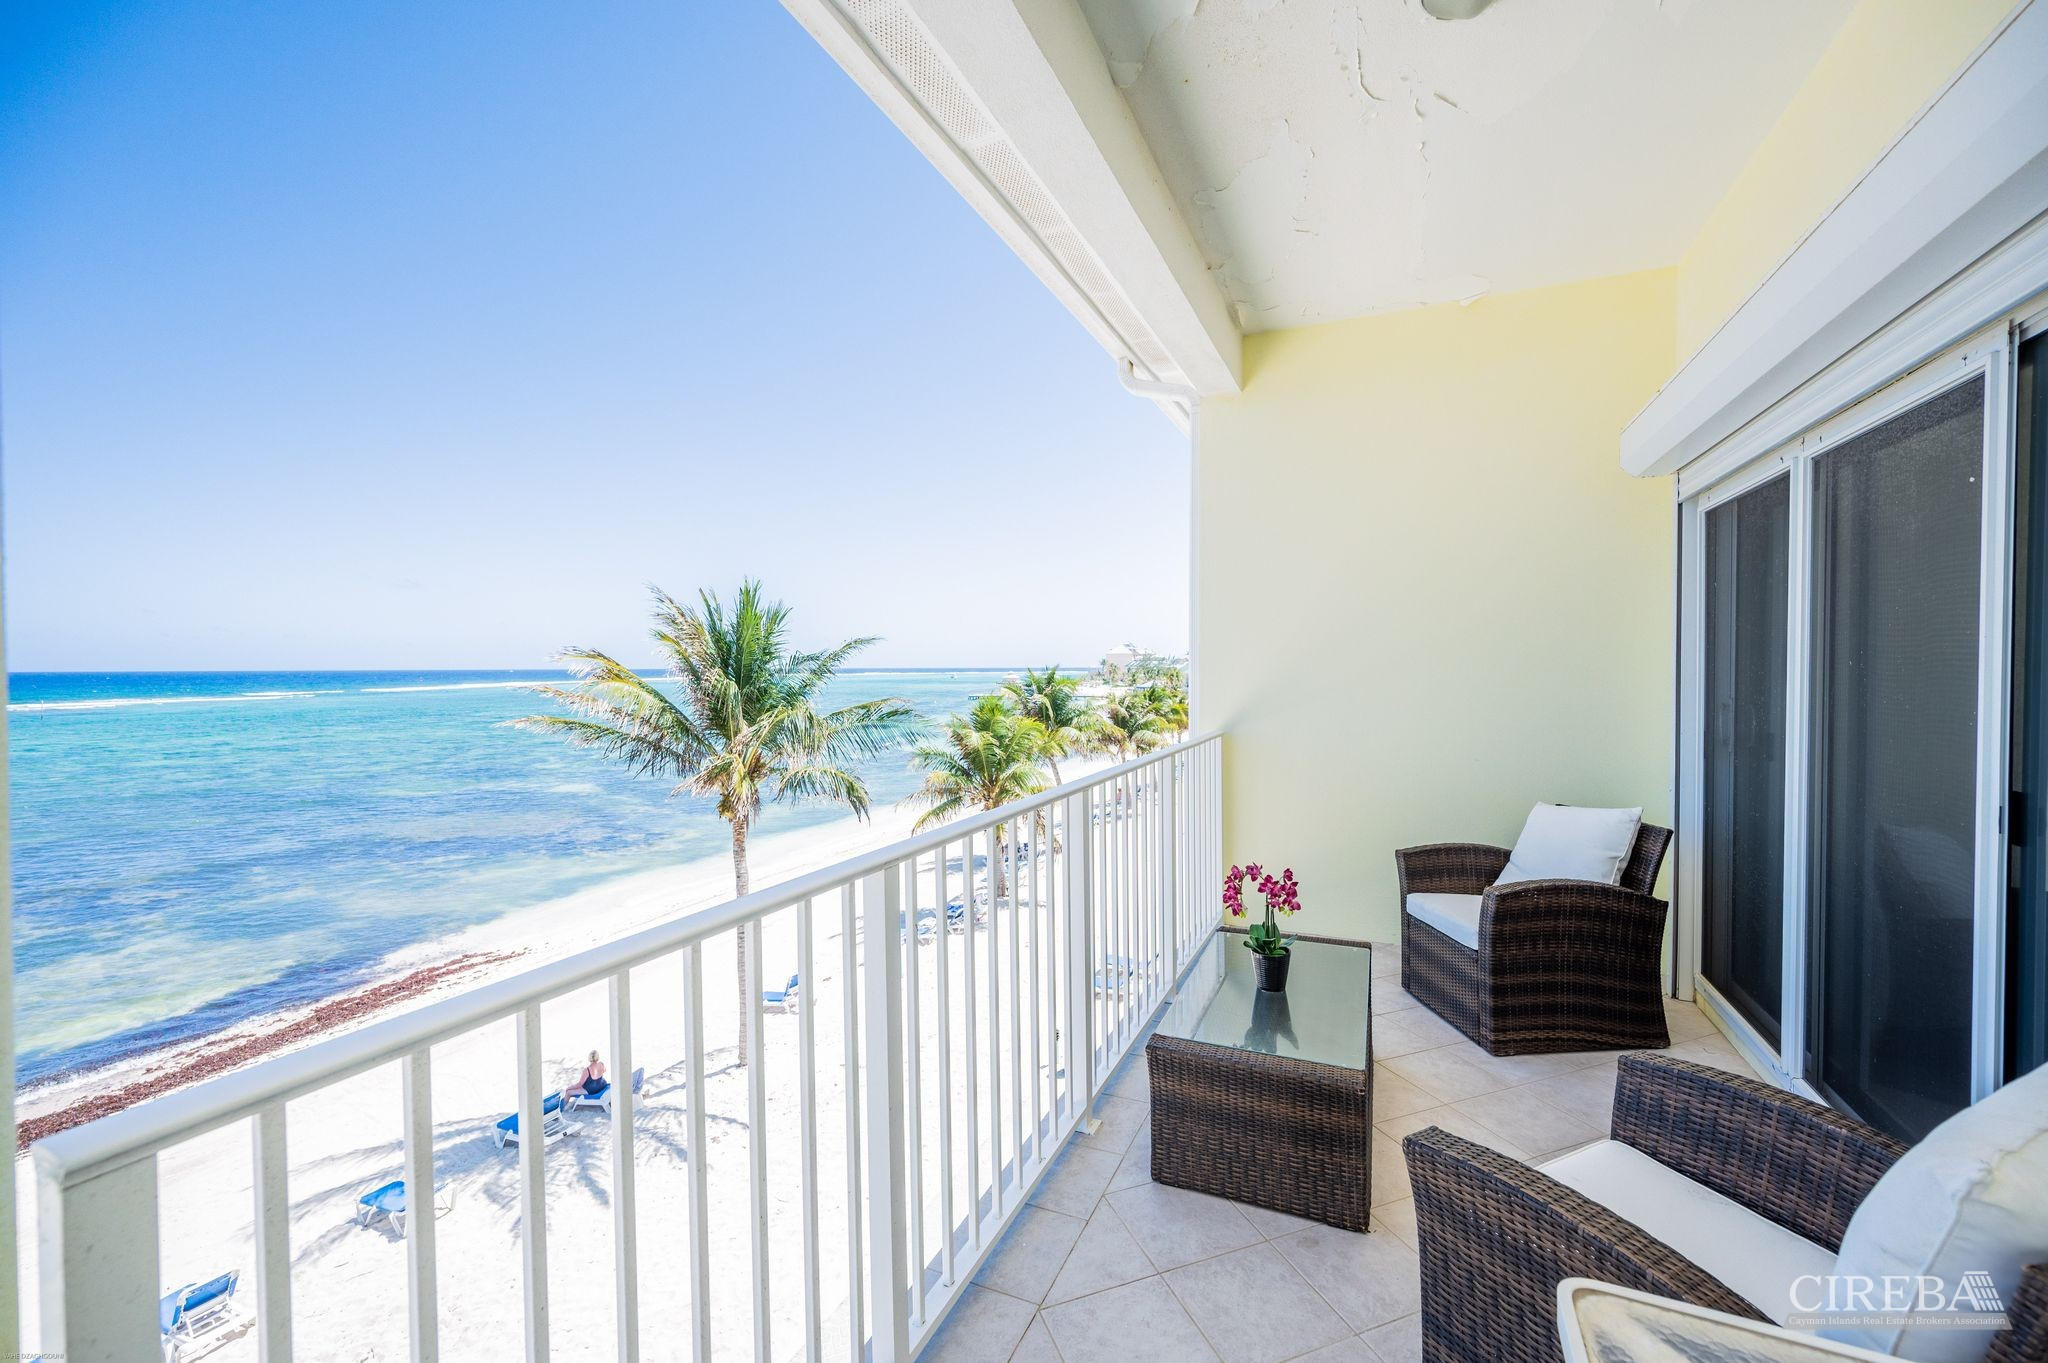 Relax, meditate, or stretch out those Covid blues on your balcony.